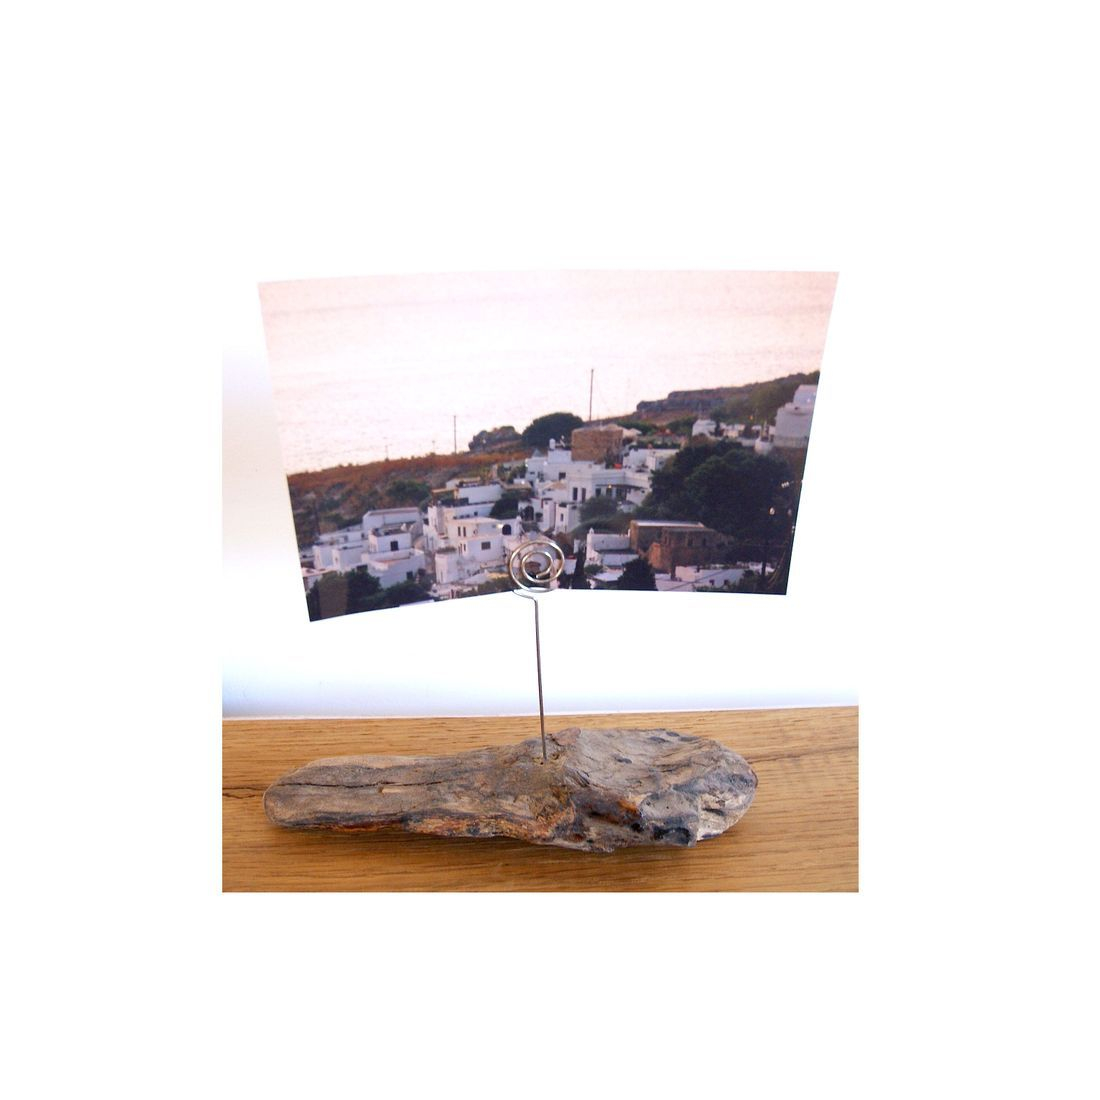 Driftwood picture / photo frame 5